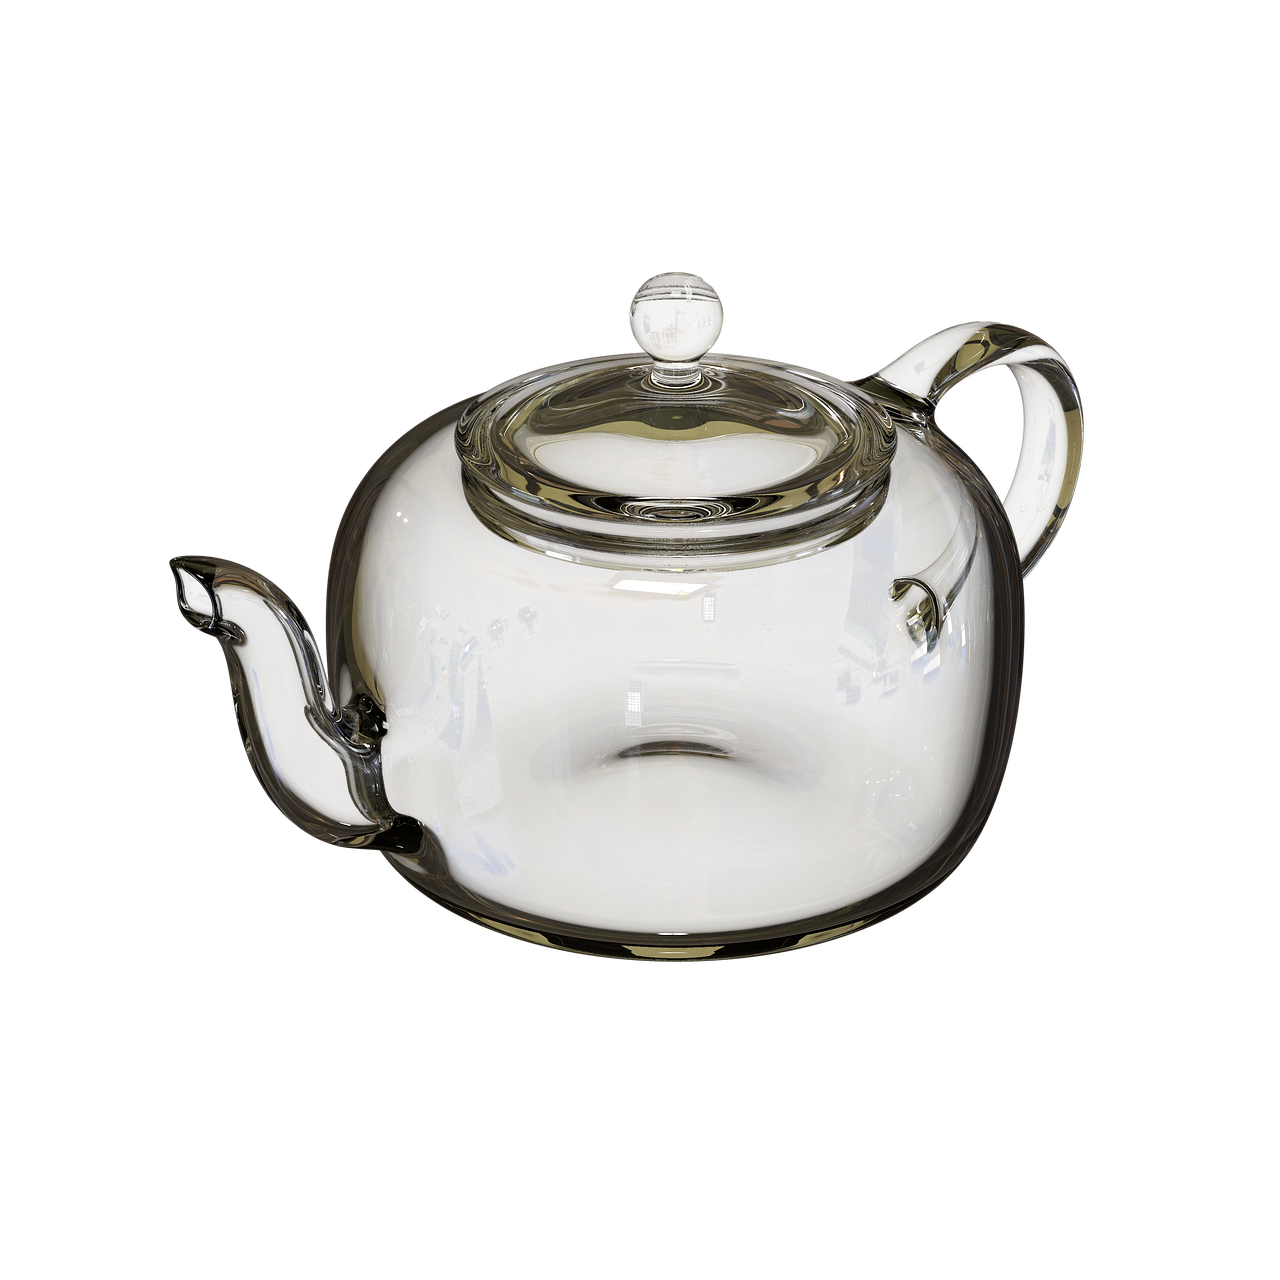 transparent kettle  transparent background  glassware free photo